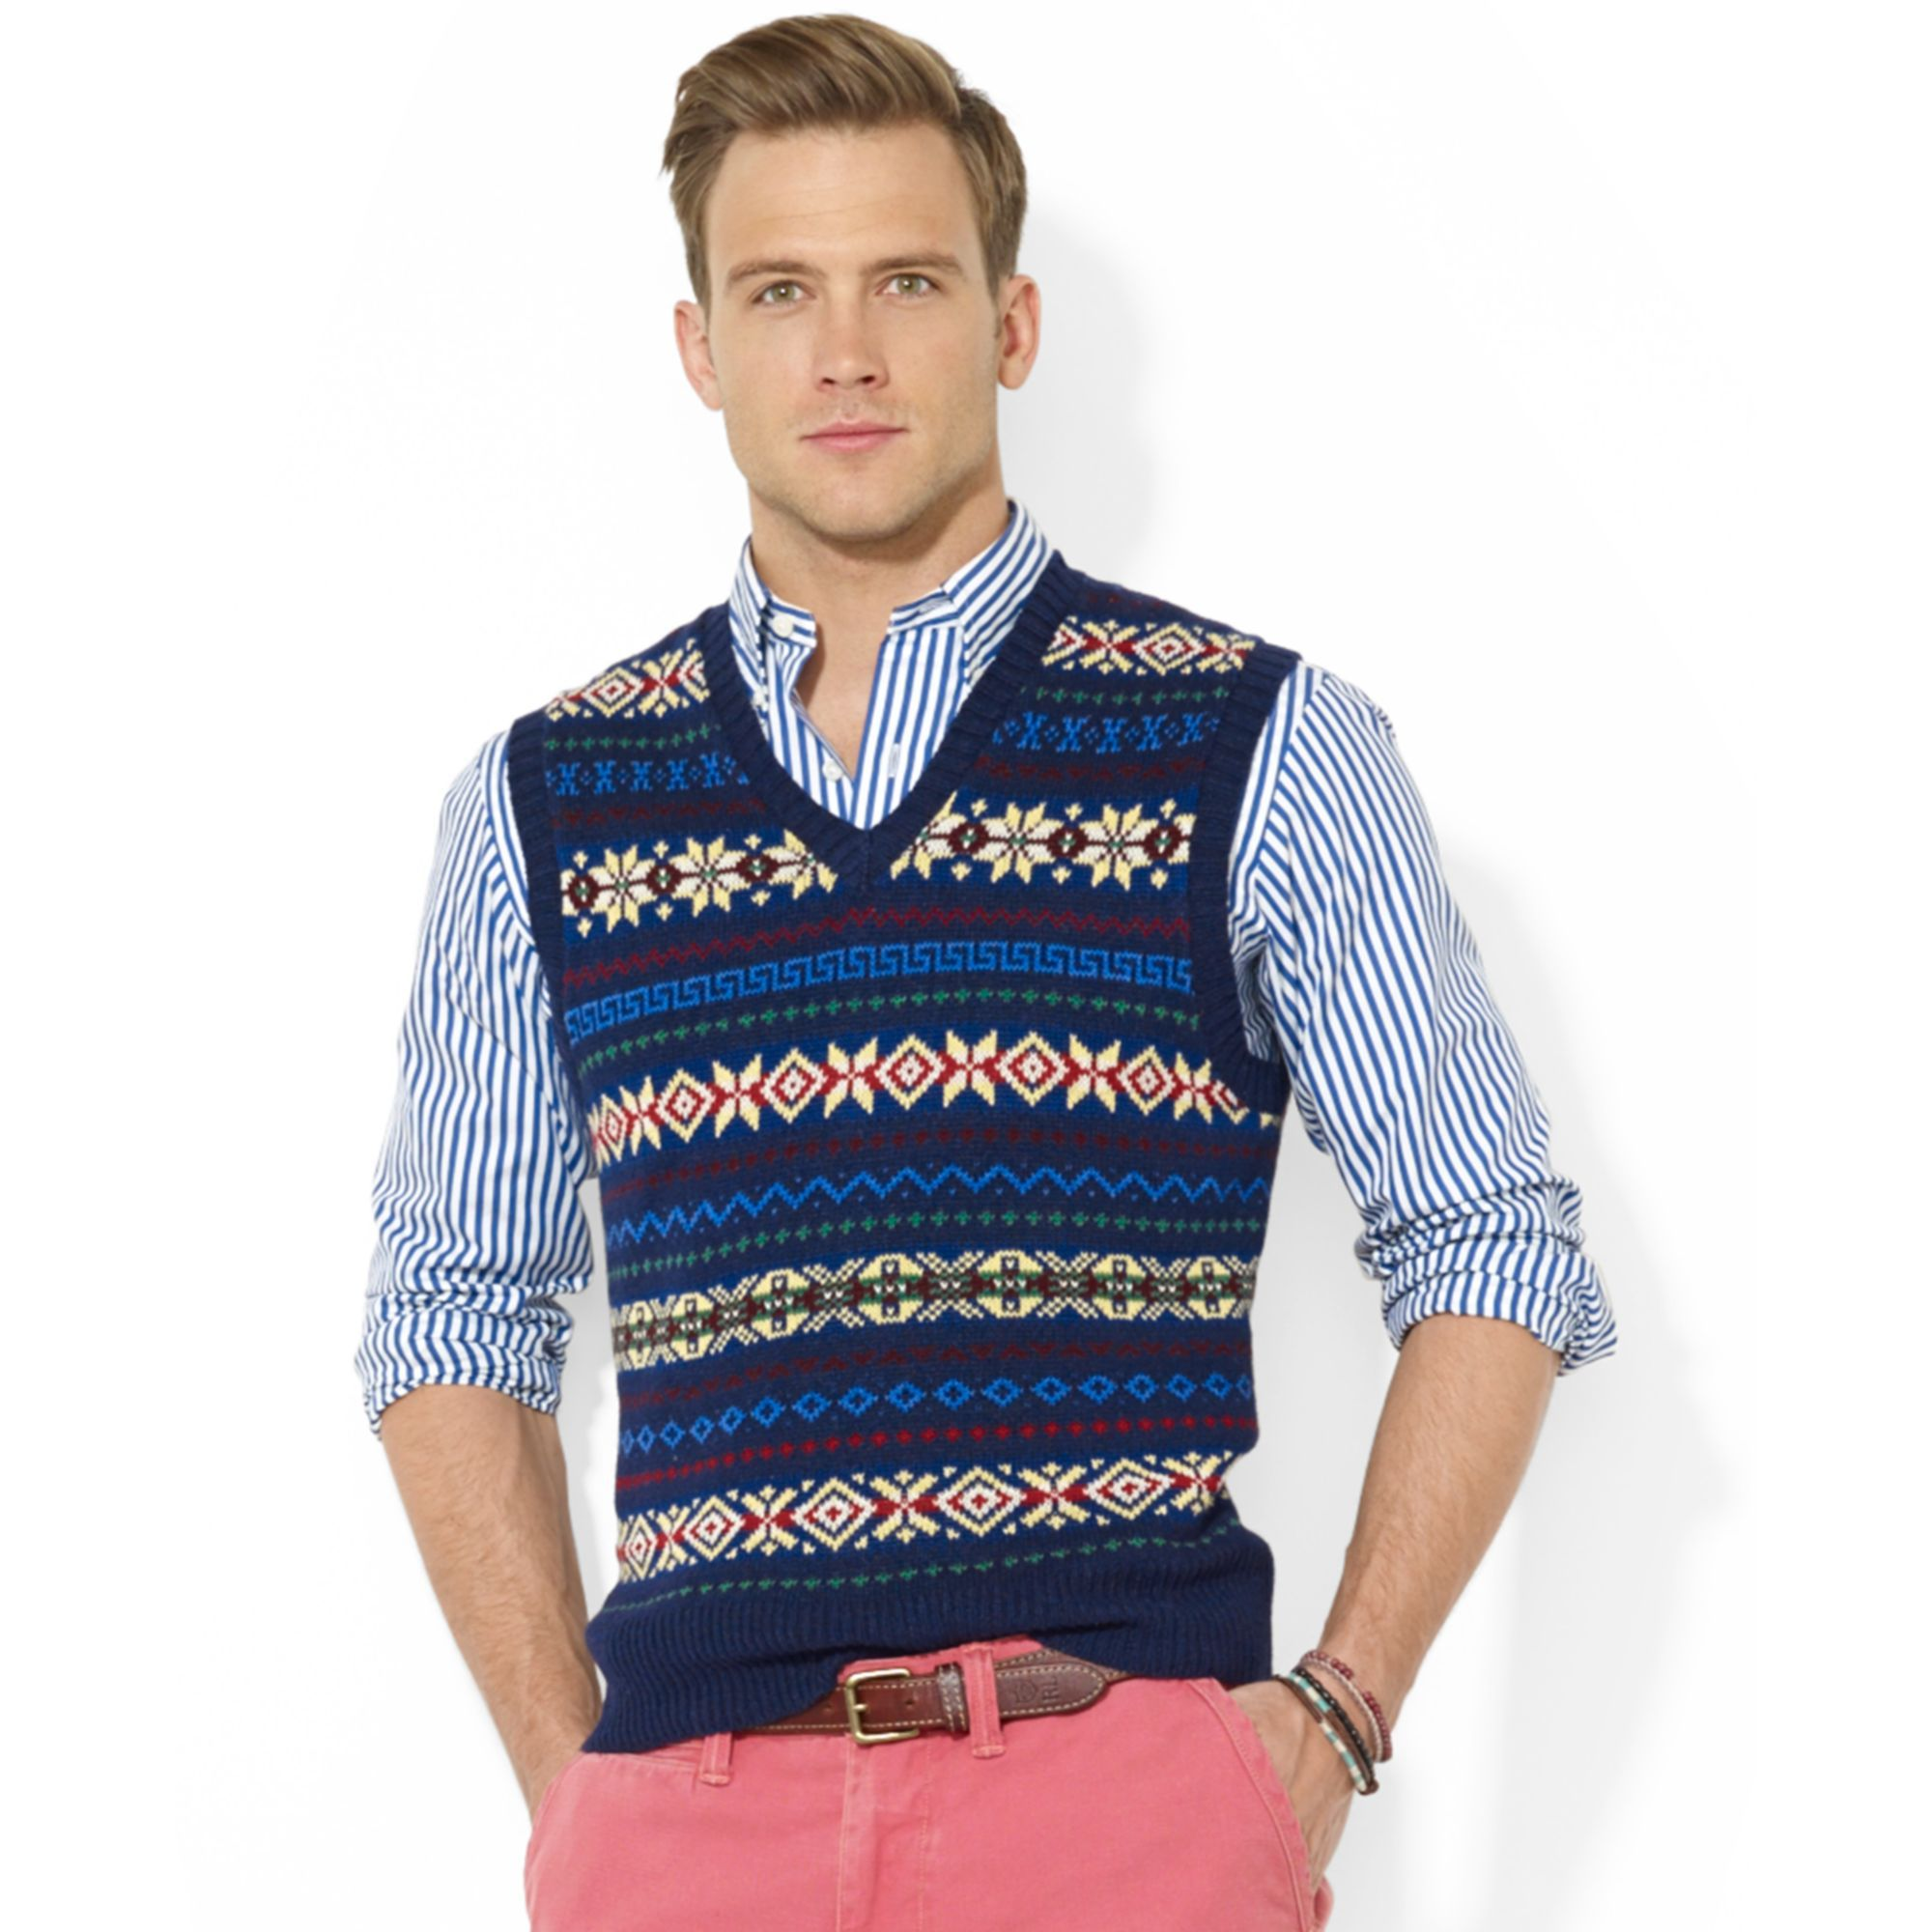 Image result for ralph lauren fair isle sweater | Knitting Design ...